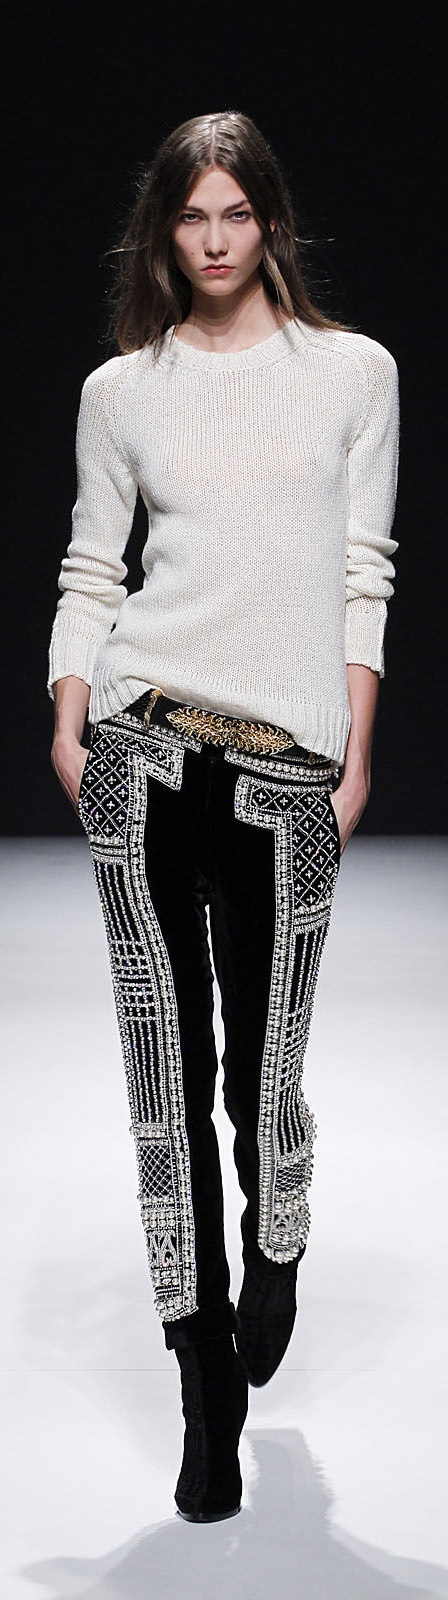 Balmain Ready-to-Wear Fall-Winter Collection 2012-2013 http://en.flip-zone.com/fashion/ready-to-wear/fashion-houses-42/balmain-2766